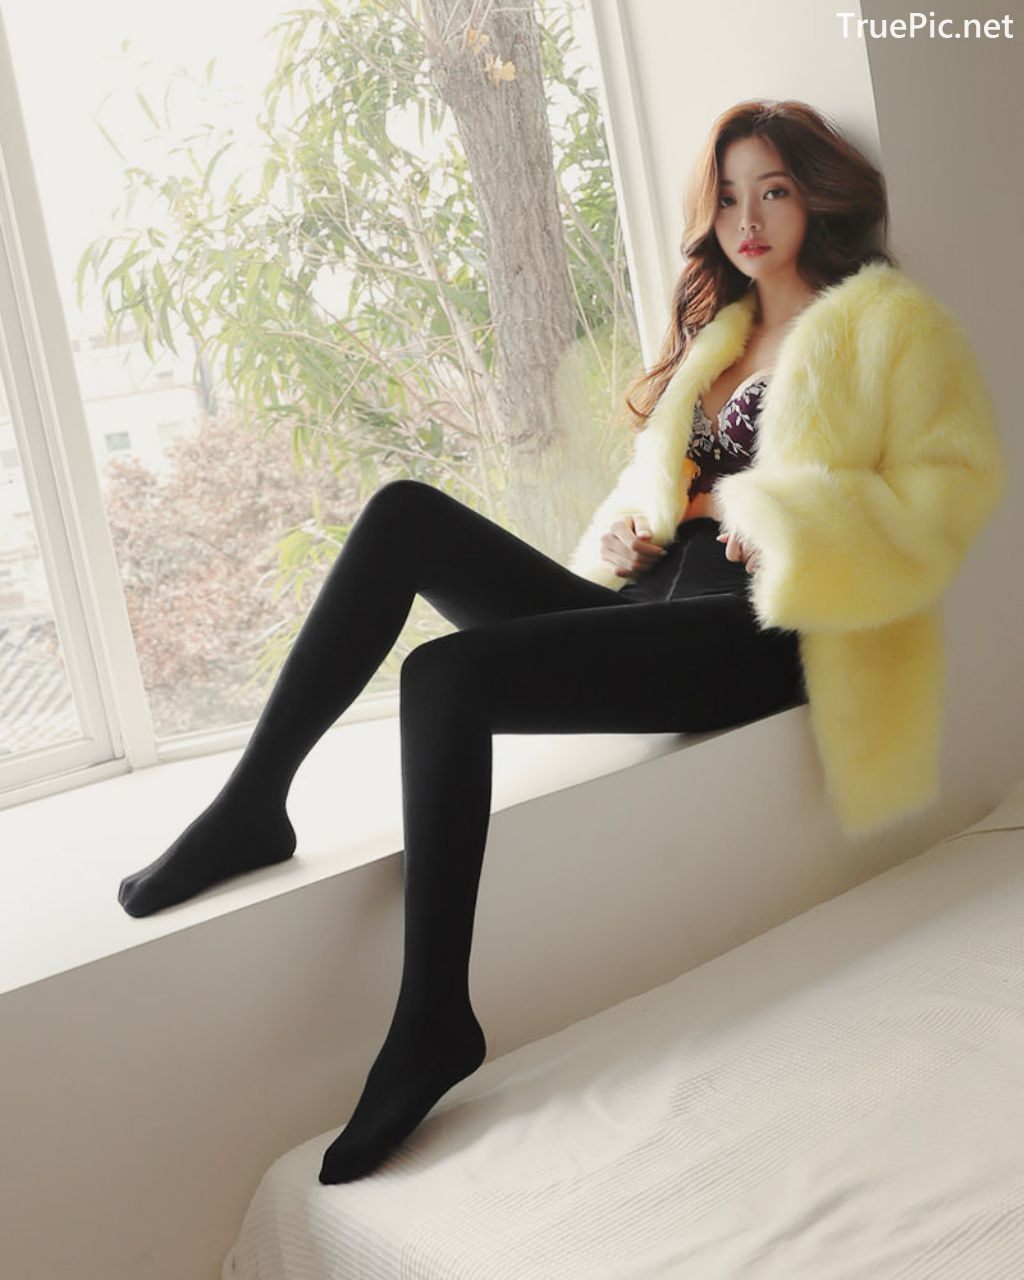 Image-Korean-Fashion-Model-Jin-Hee-Black-Tights-And-Winter-Sweater-Dress-TruePic.net- Picture-1